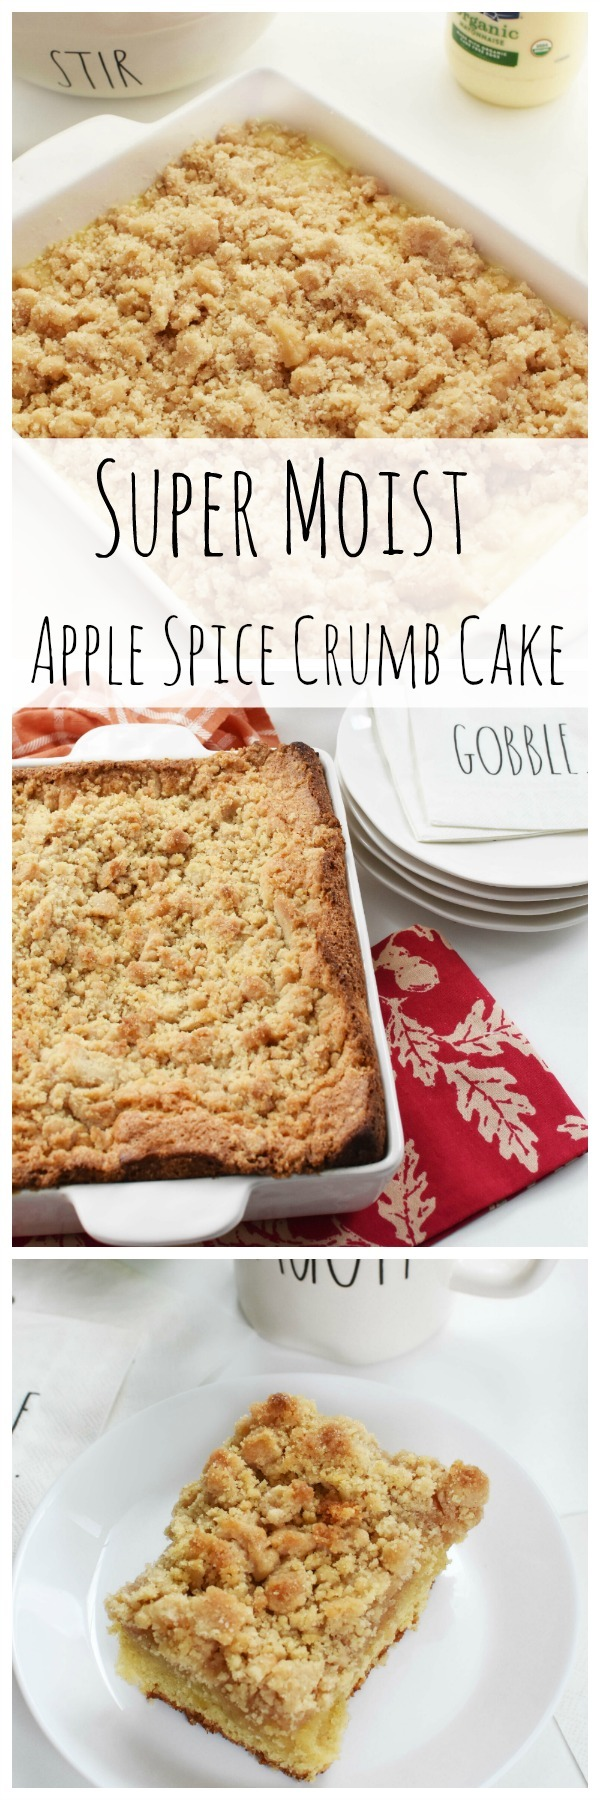 Super Moist Organic Apple Spice Crumb Cake